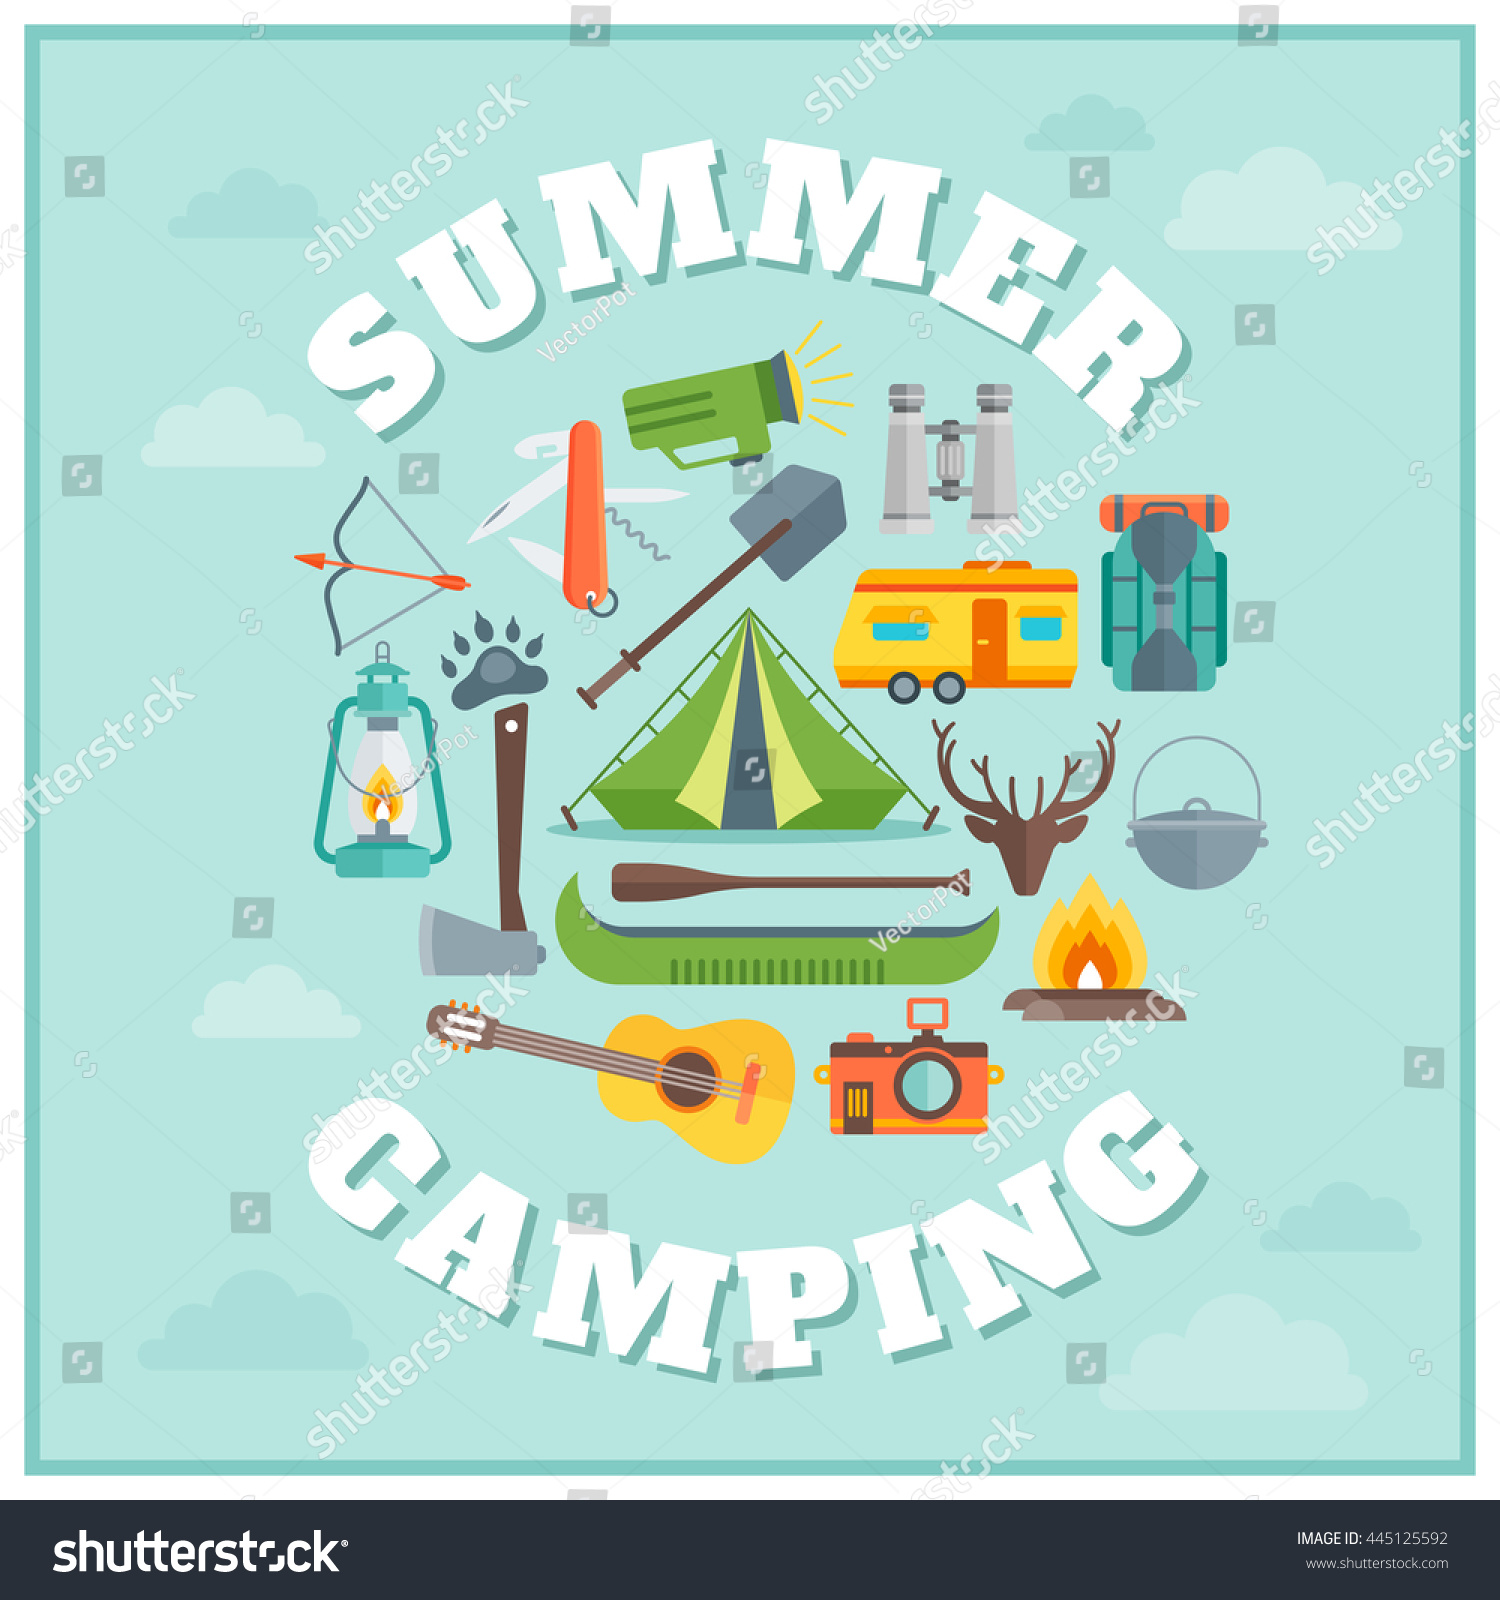 Summer camping round design with tourist equipment vehicles guitar antlers on blue background with clouds vector illustration